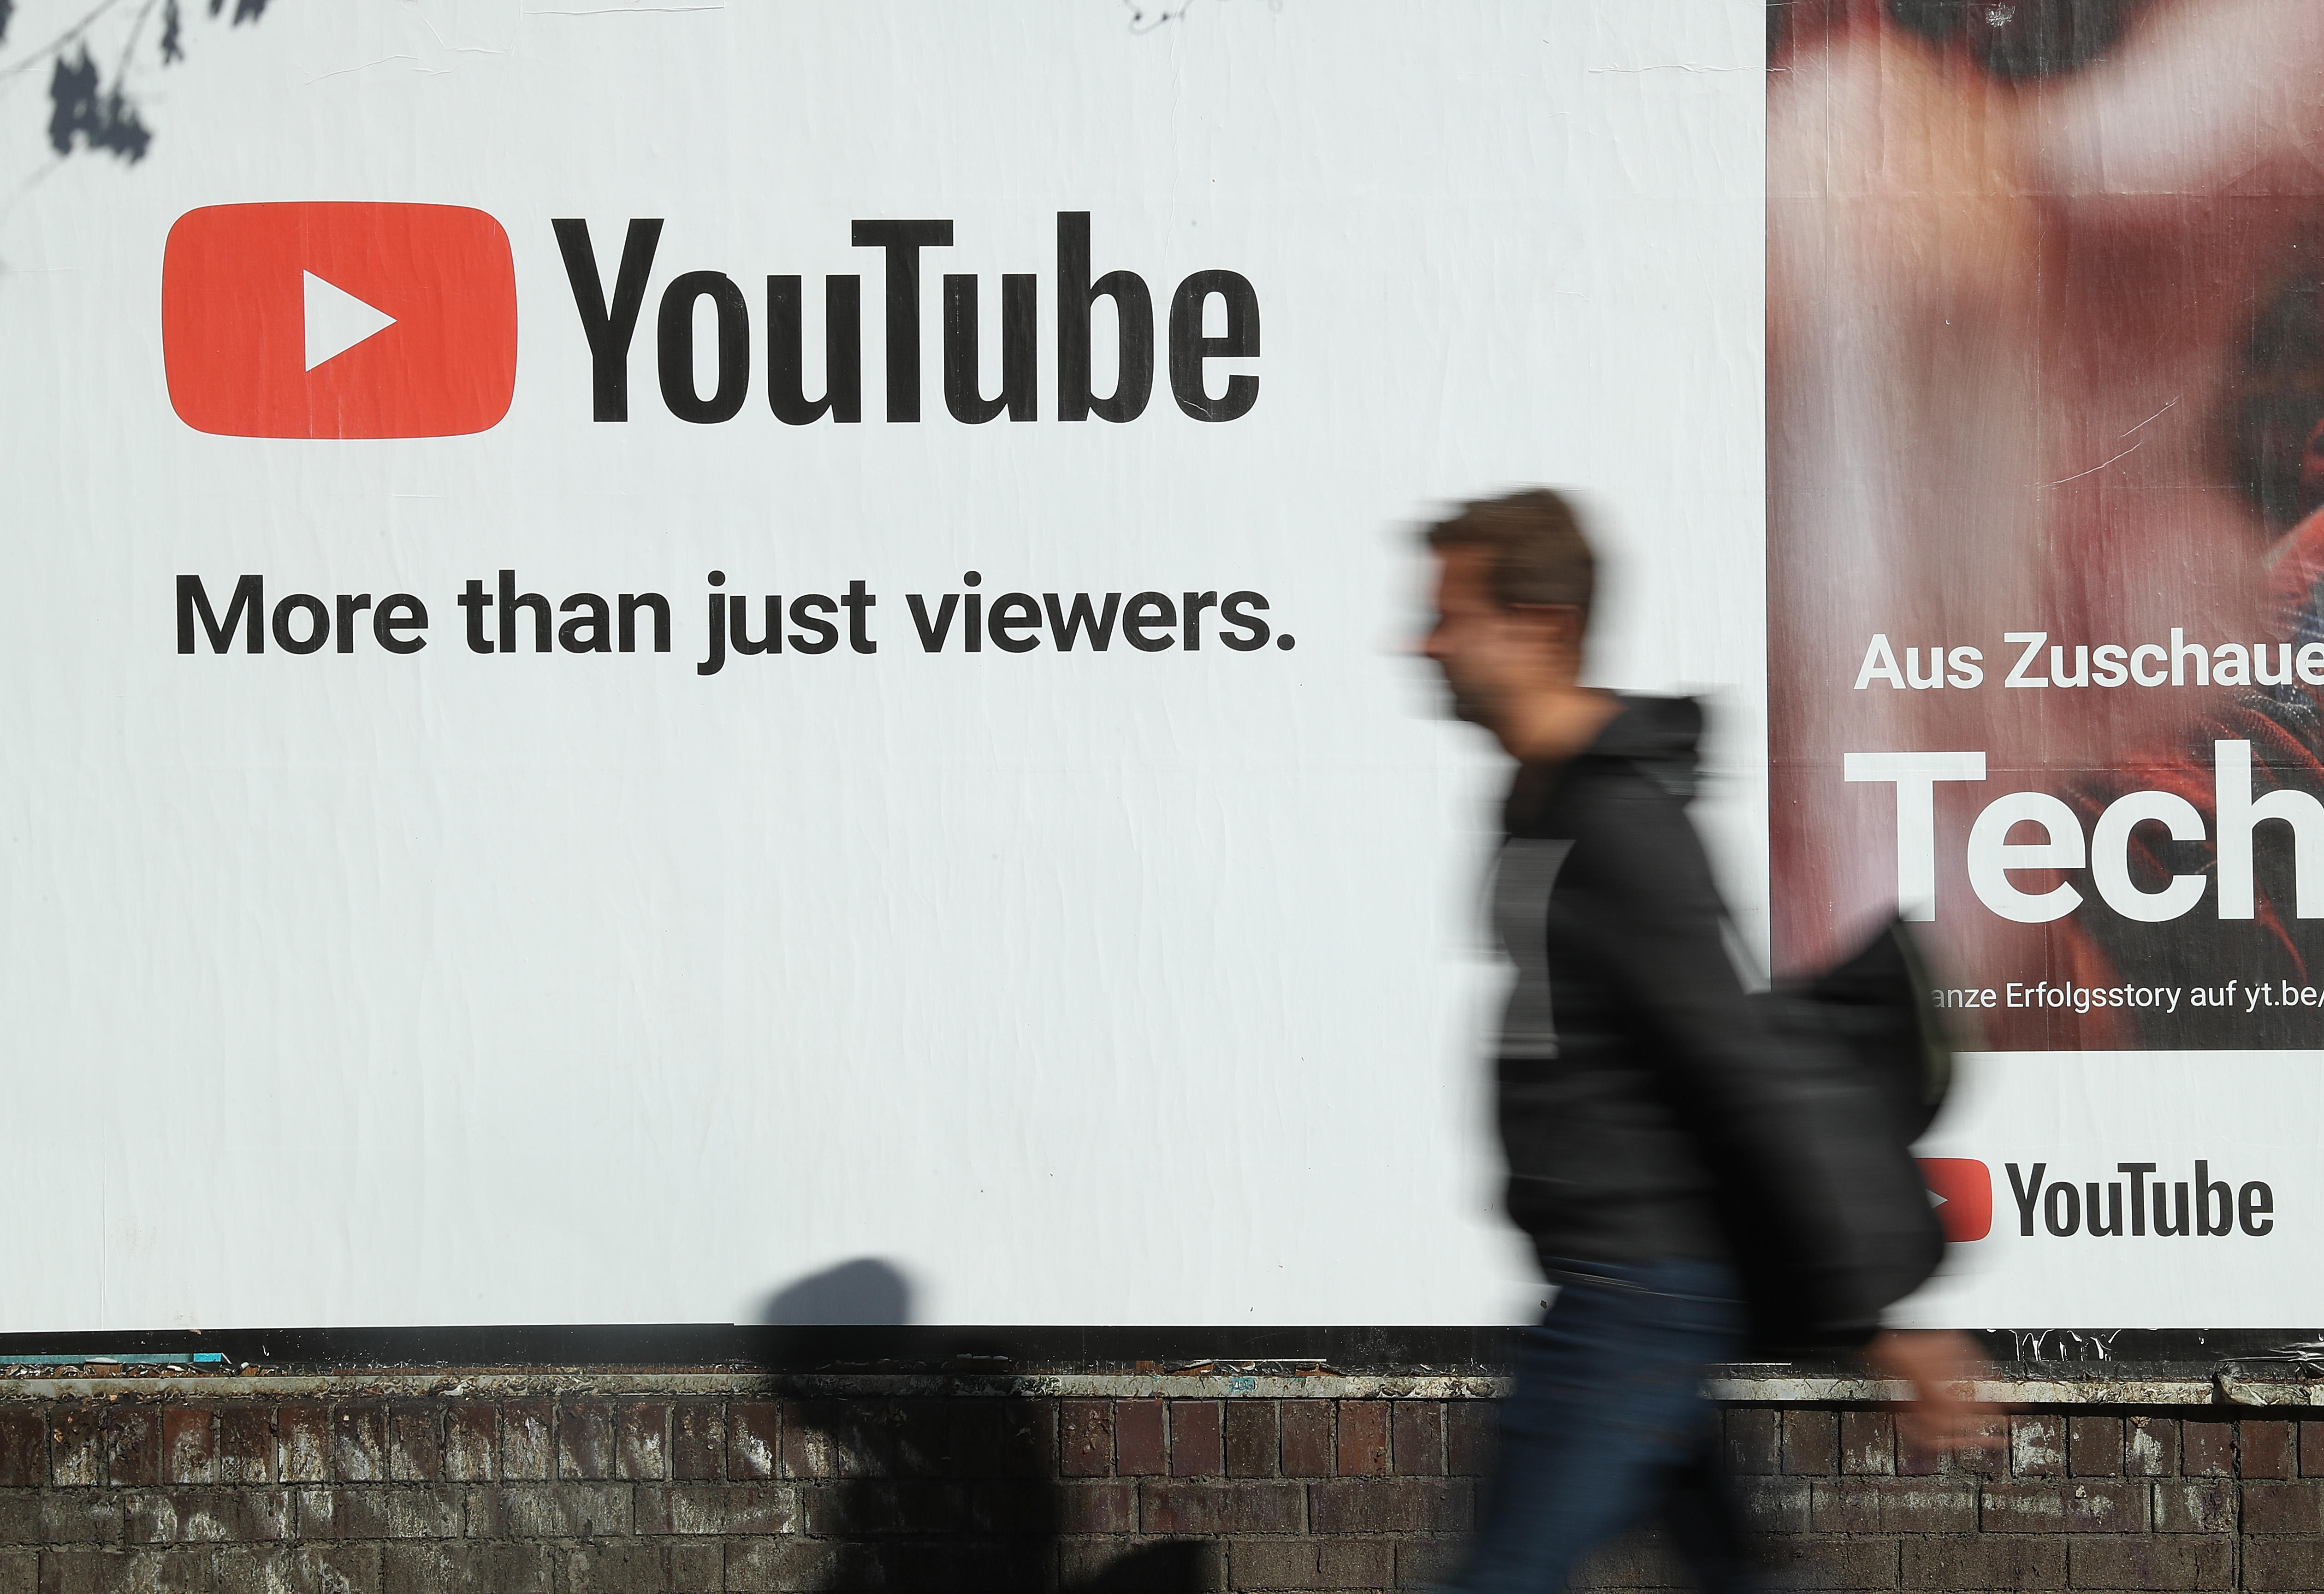 """A YouTube billboard bears the tagline """"More than just viewers."""""""